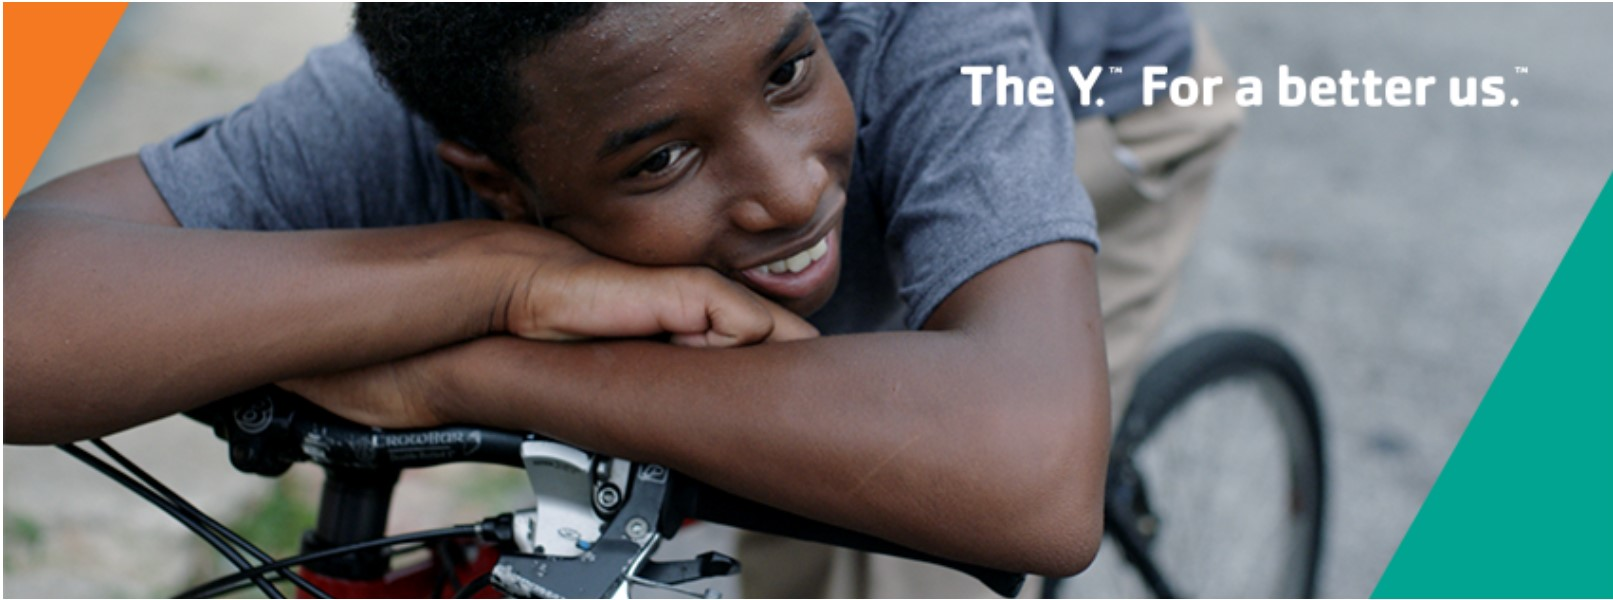 The Y. For a Better Us.